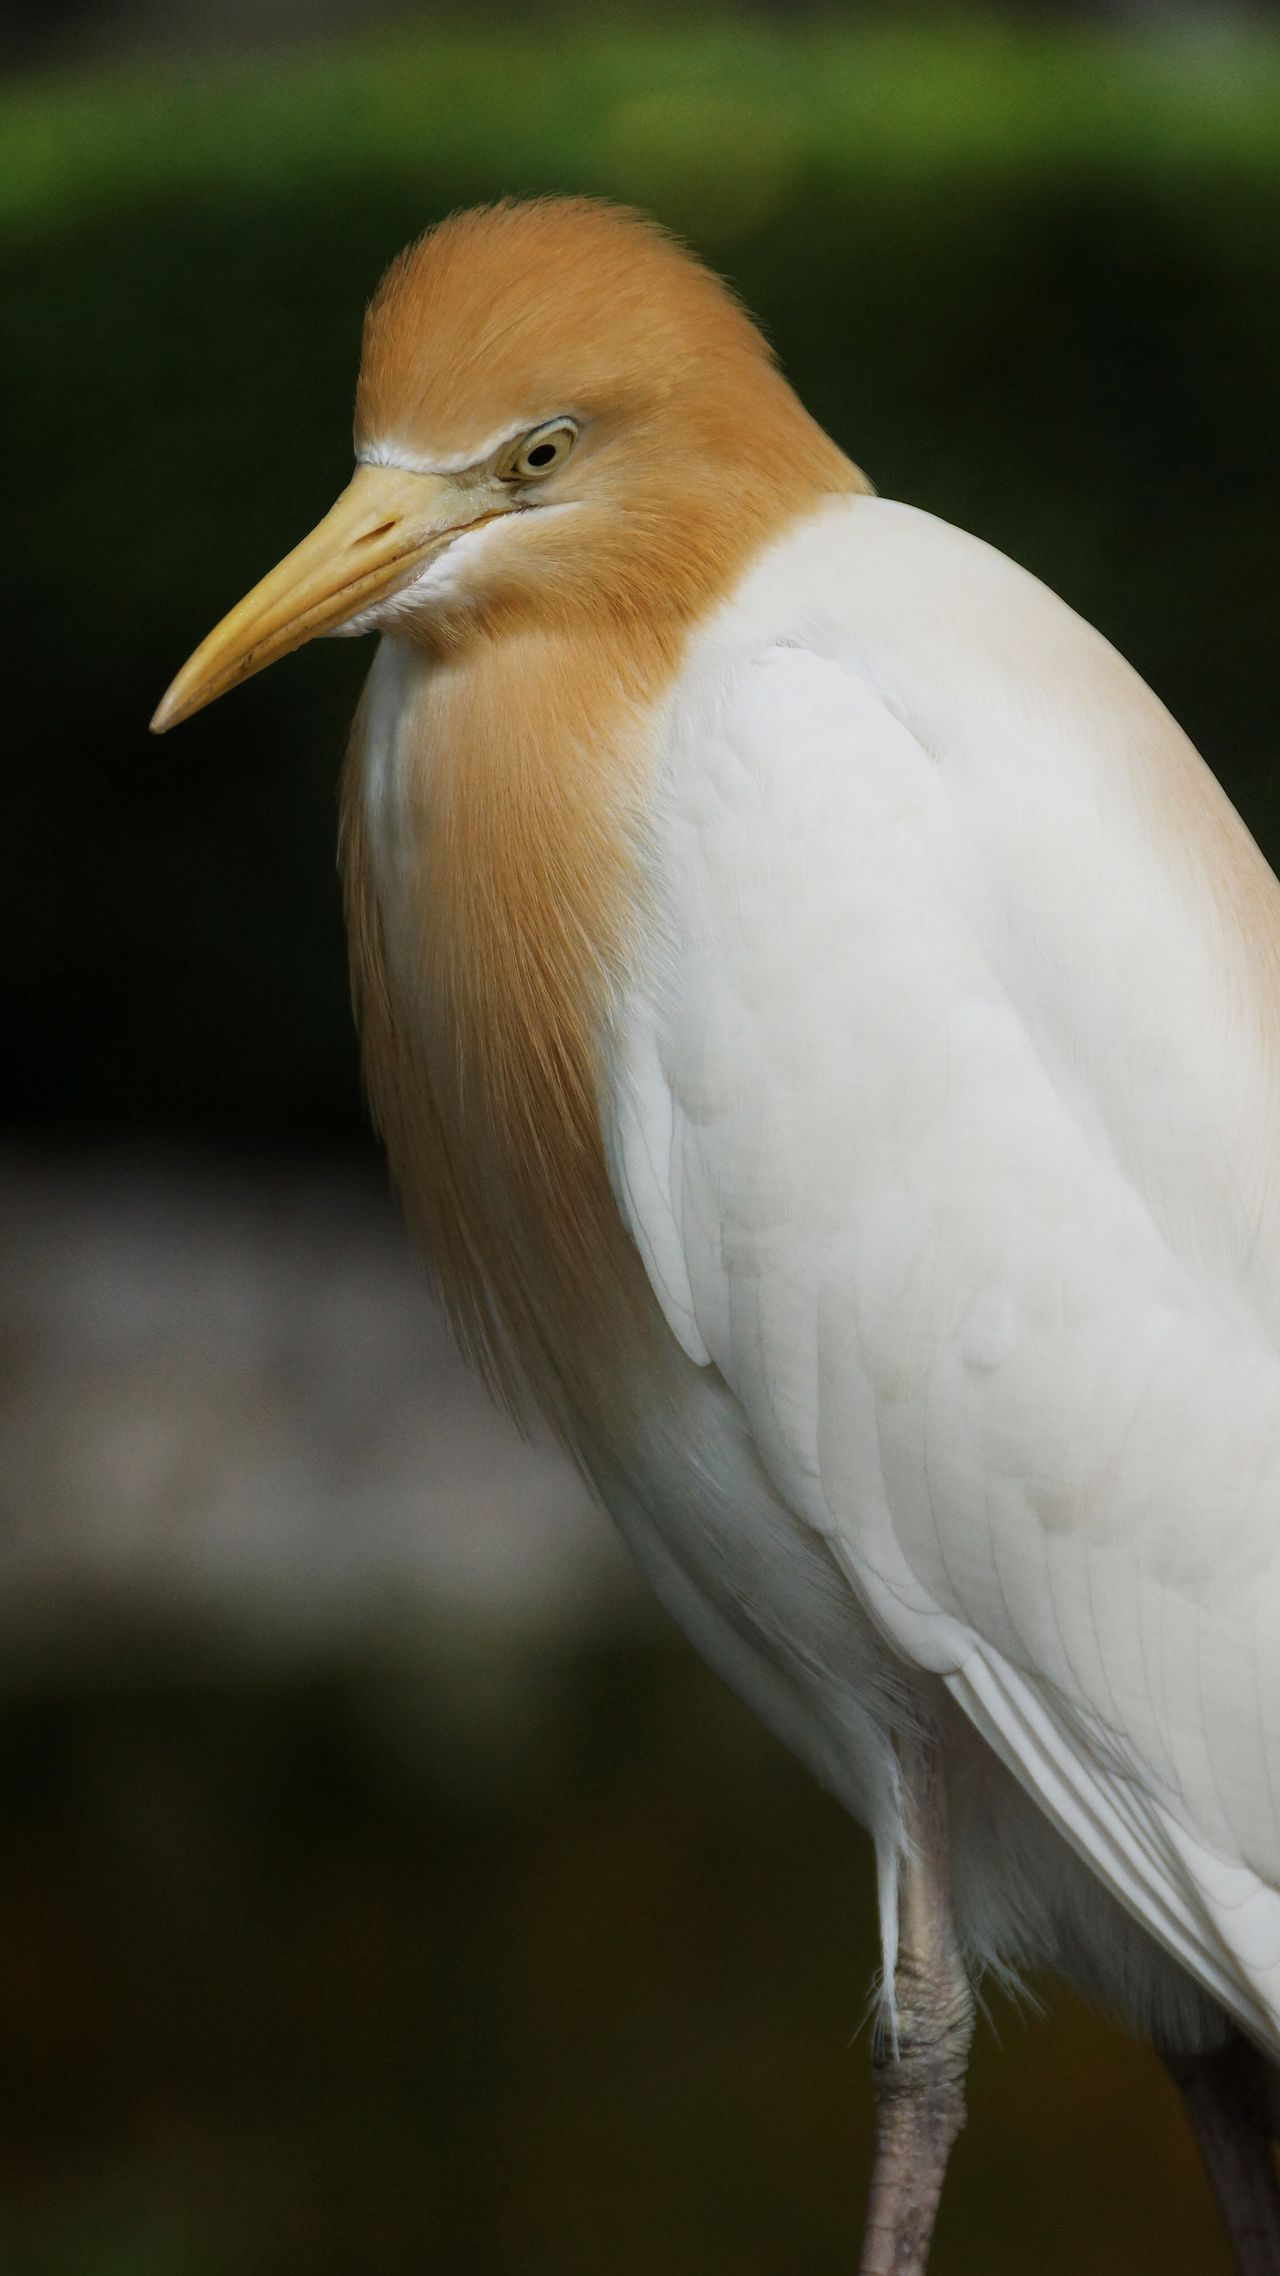 The cattle egret (Bubulcus ibis) is a cosmopolitan species of heron (family Ardeidae) found in the tropics, subtropics and warm temperate zones. One Animal Bird Animals In The Wild Animal Themes Animal Wildlife Beak Close-up Focus On Foreground Day Perching No People Nature Outdoors Beauty In Nature Birdfreaks Bird Watching Birds🐦⛅ Bird Of Prey Cattle Egret Egret Herons Birds Bird Photography Birds_collection Birds Of EyeEm